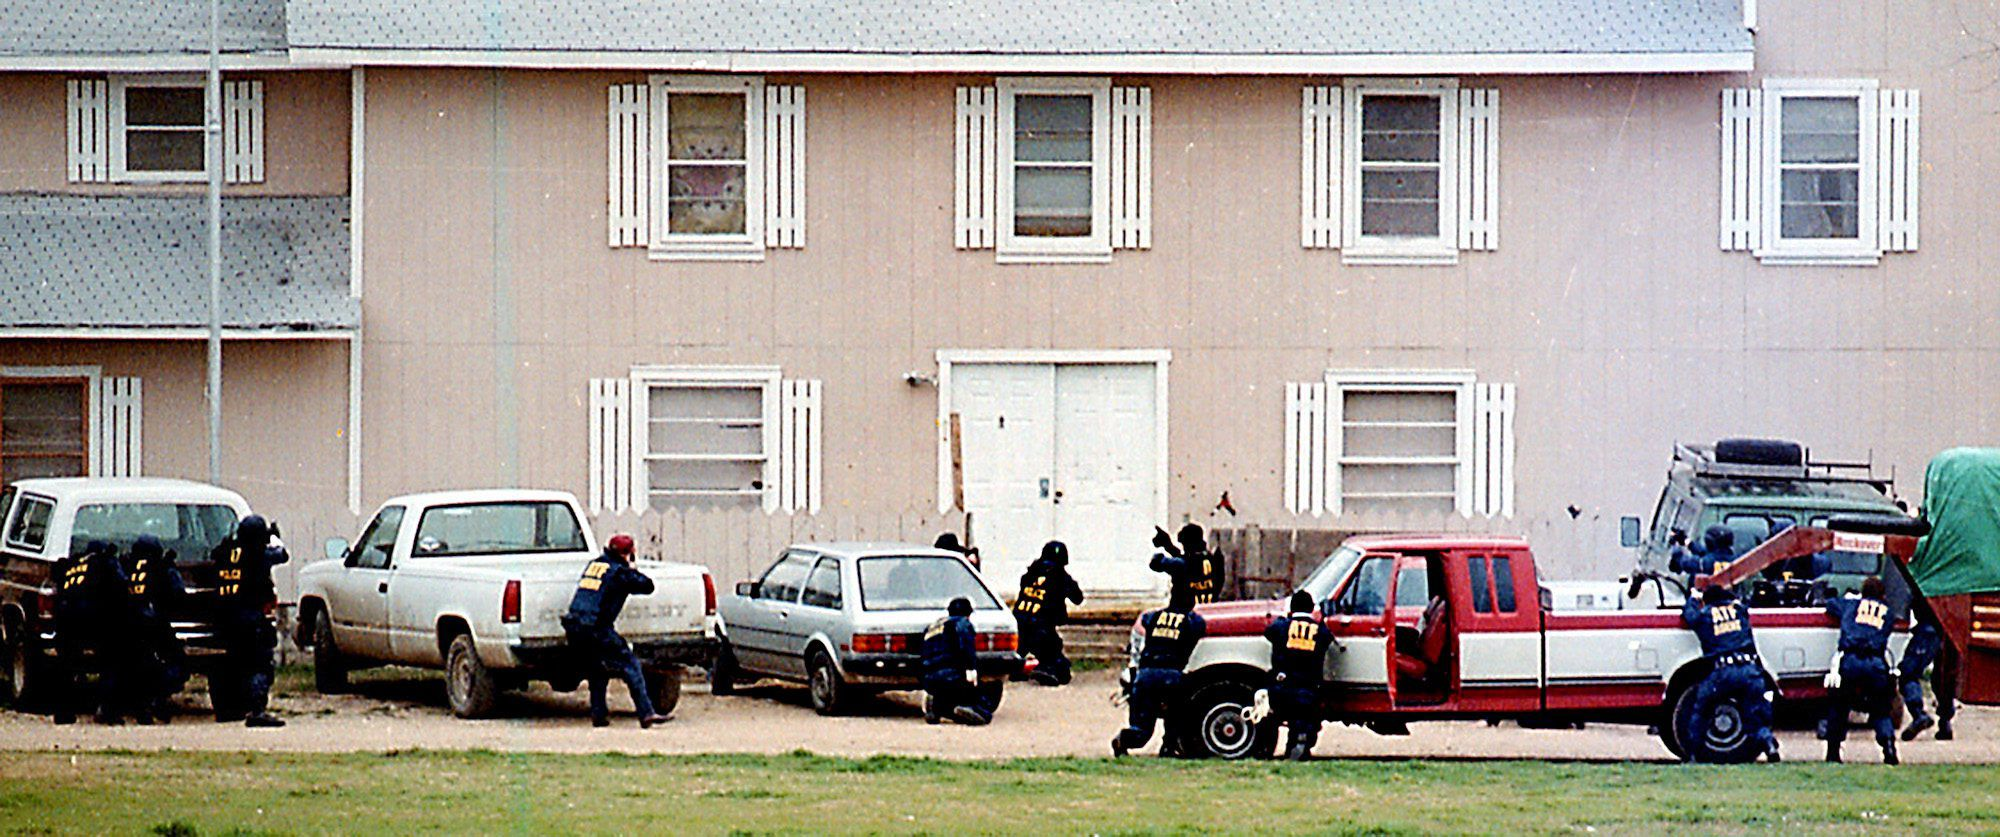 ATF raid on the Branch Davidian compound of Feb. 28, 1993.